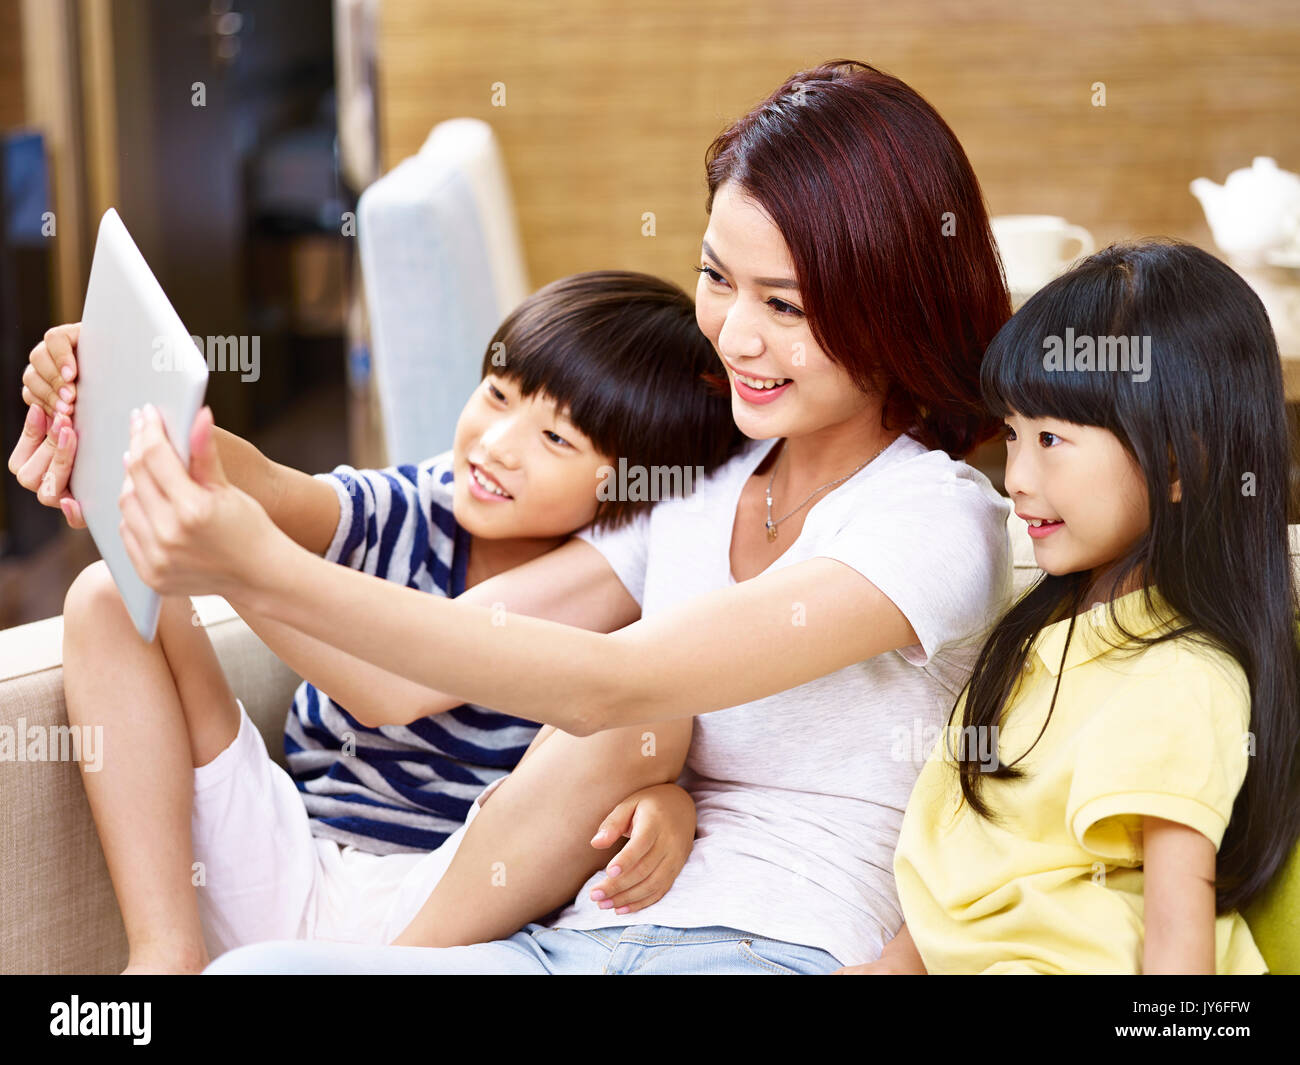 young asian mother and children sitting on sofa taking a selfie with digital tablet, happy and smiling. - Stock Image